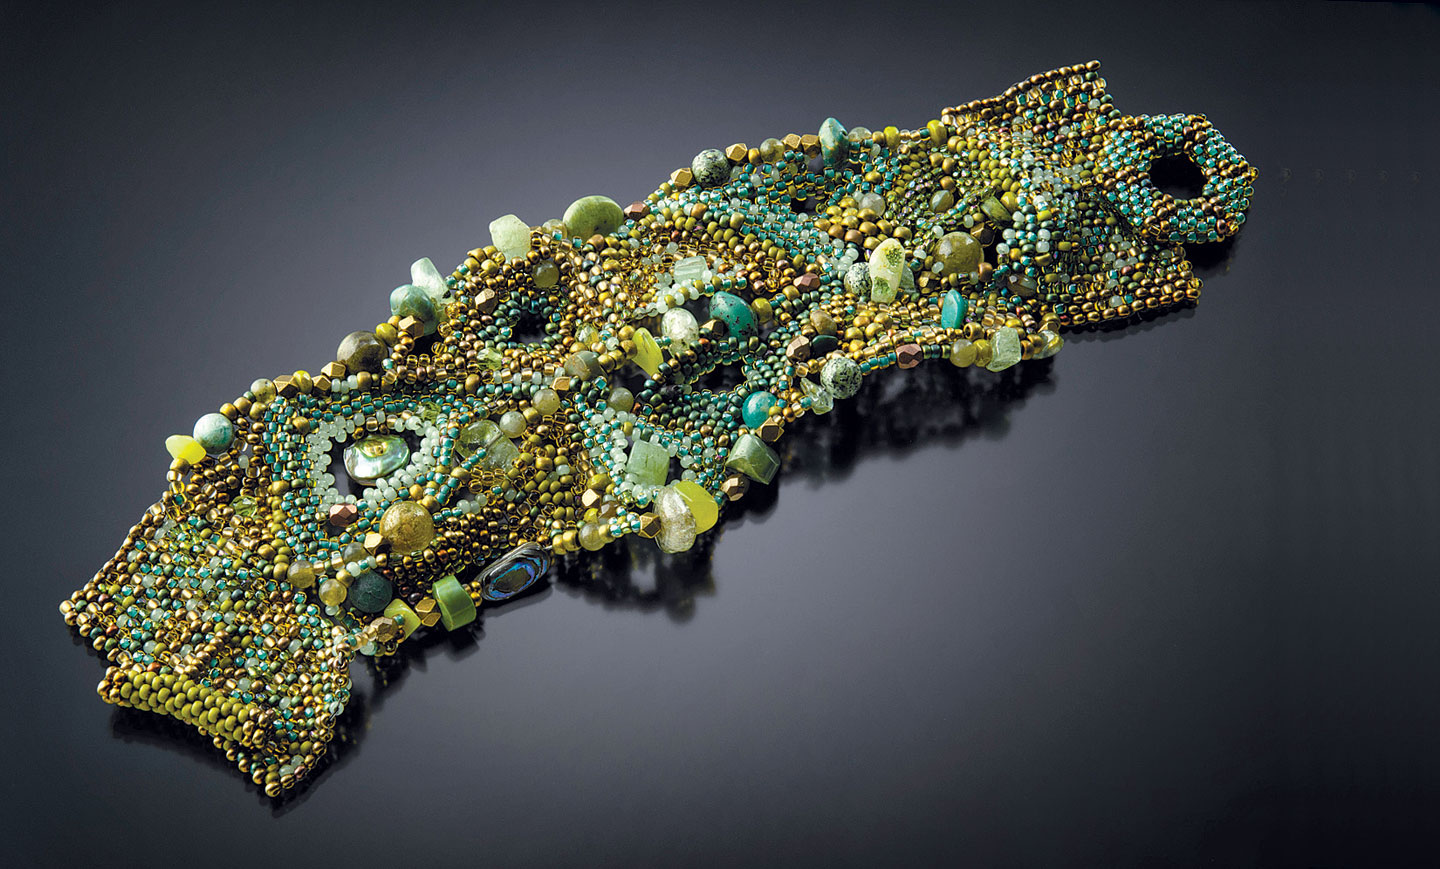 LEAFY TANGLE CUFF of glass seed beads and stones, woven in a free-form style between wire armature, with a needle and fishing line; includes turquoise, prehnite and jade, 17.0 centimeters long x 4.5 centimeters high, 2014.